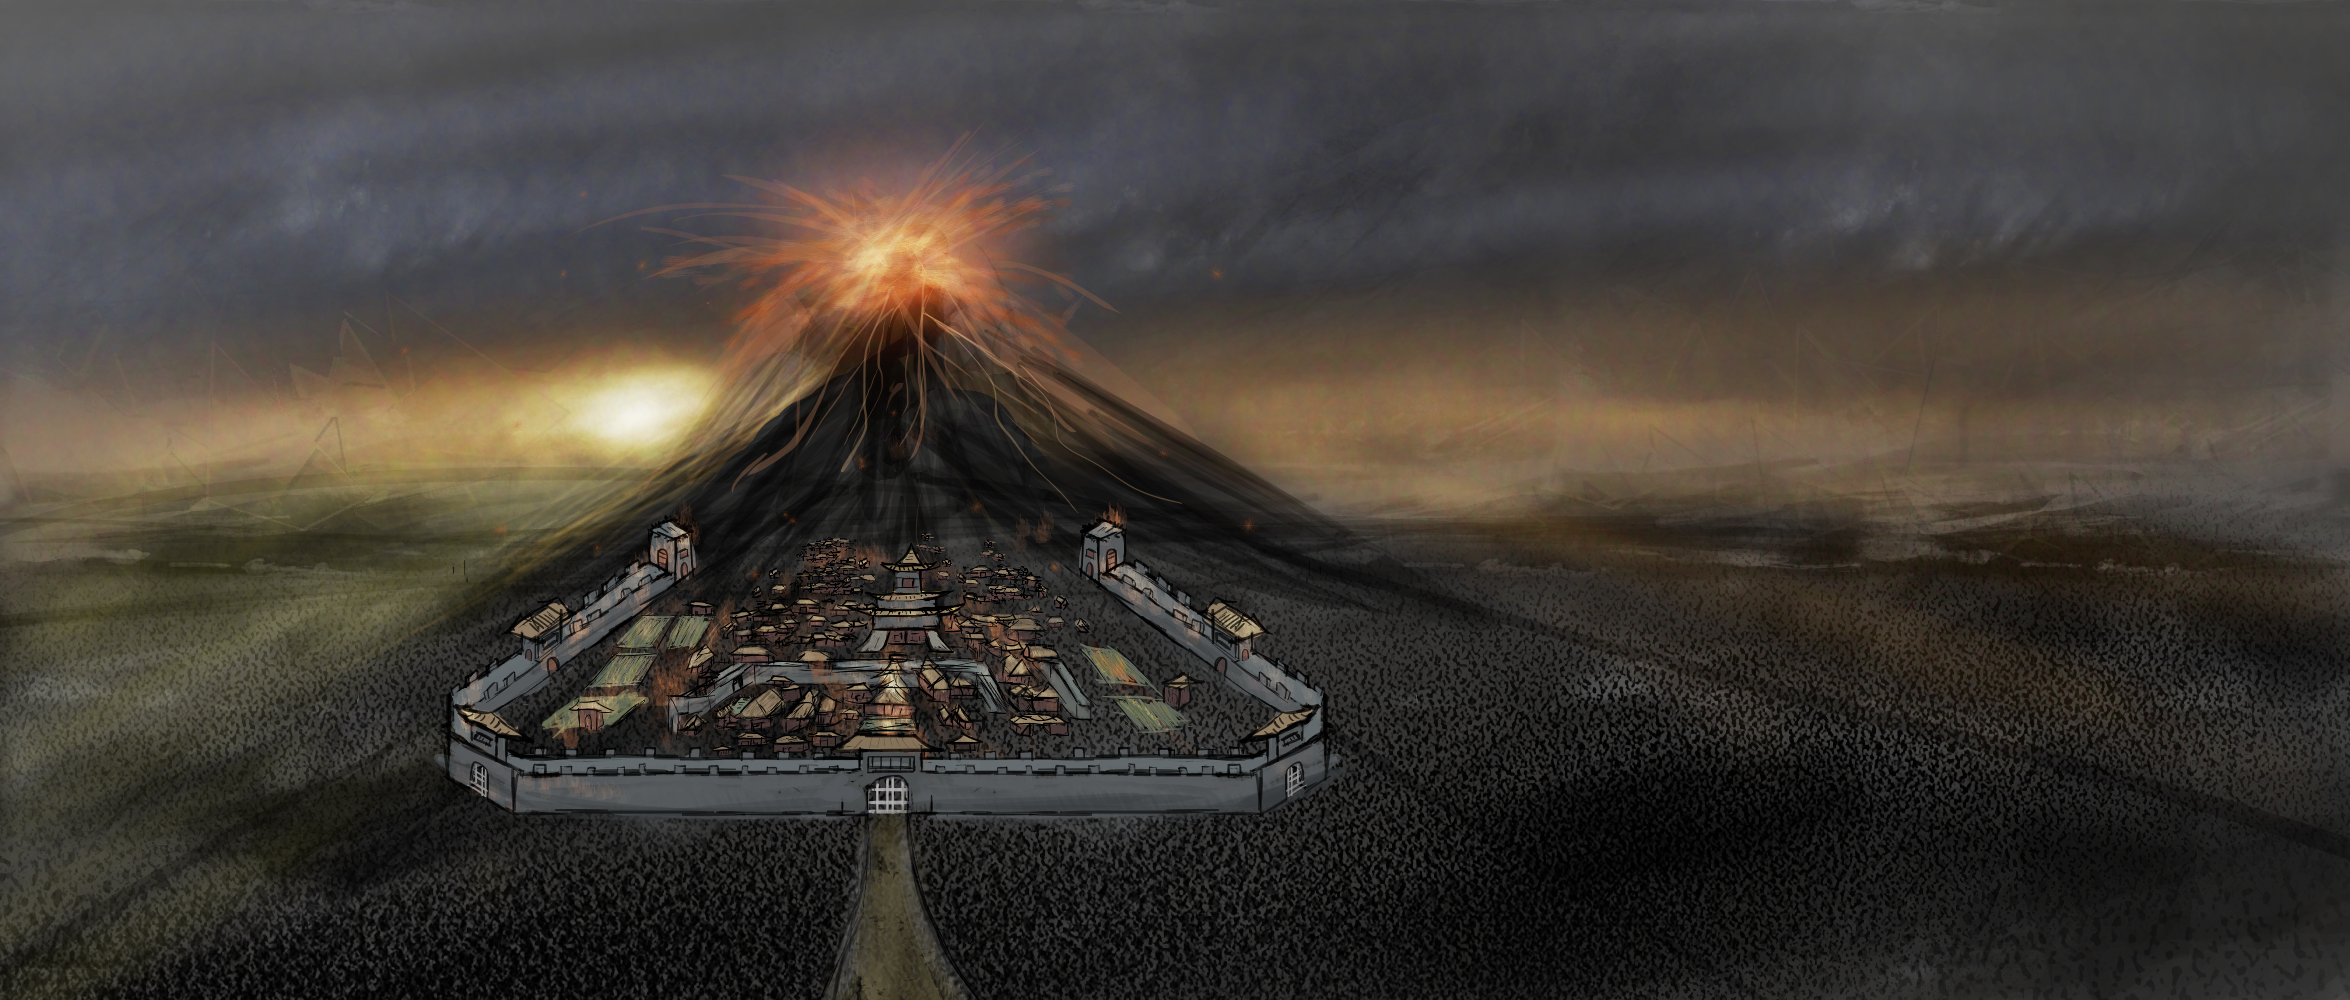 Volcano_City_Asia_by_Hayden_Zammit.png